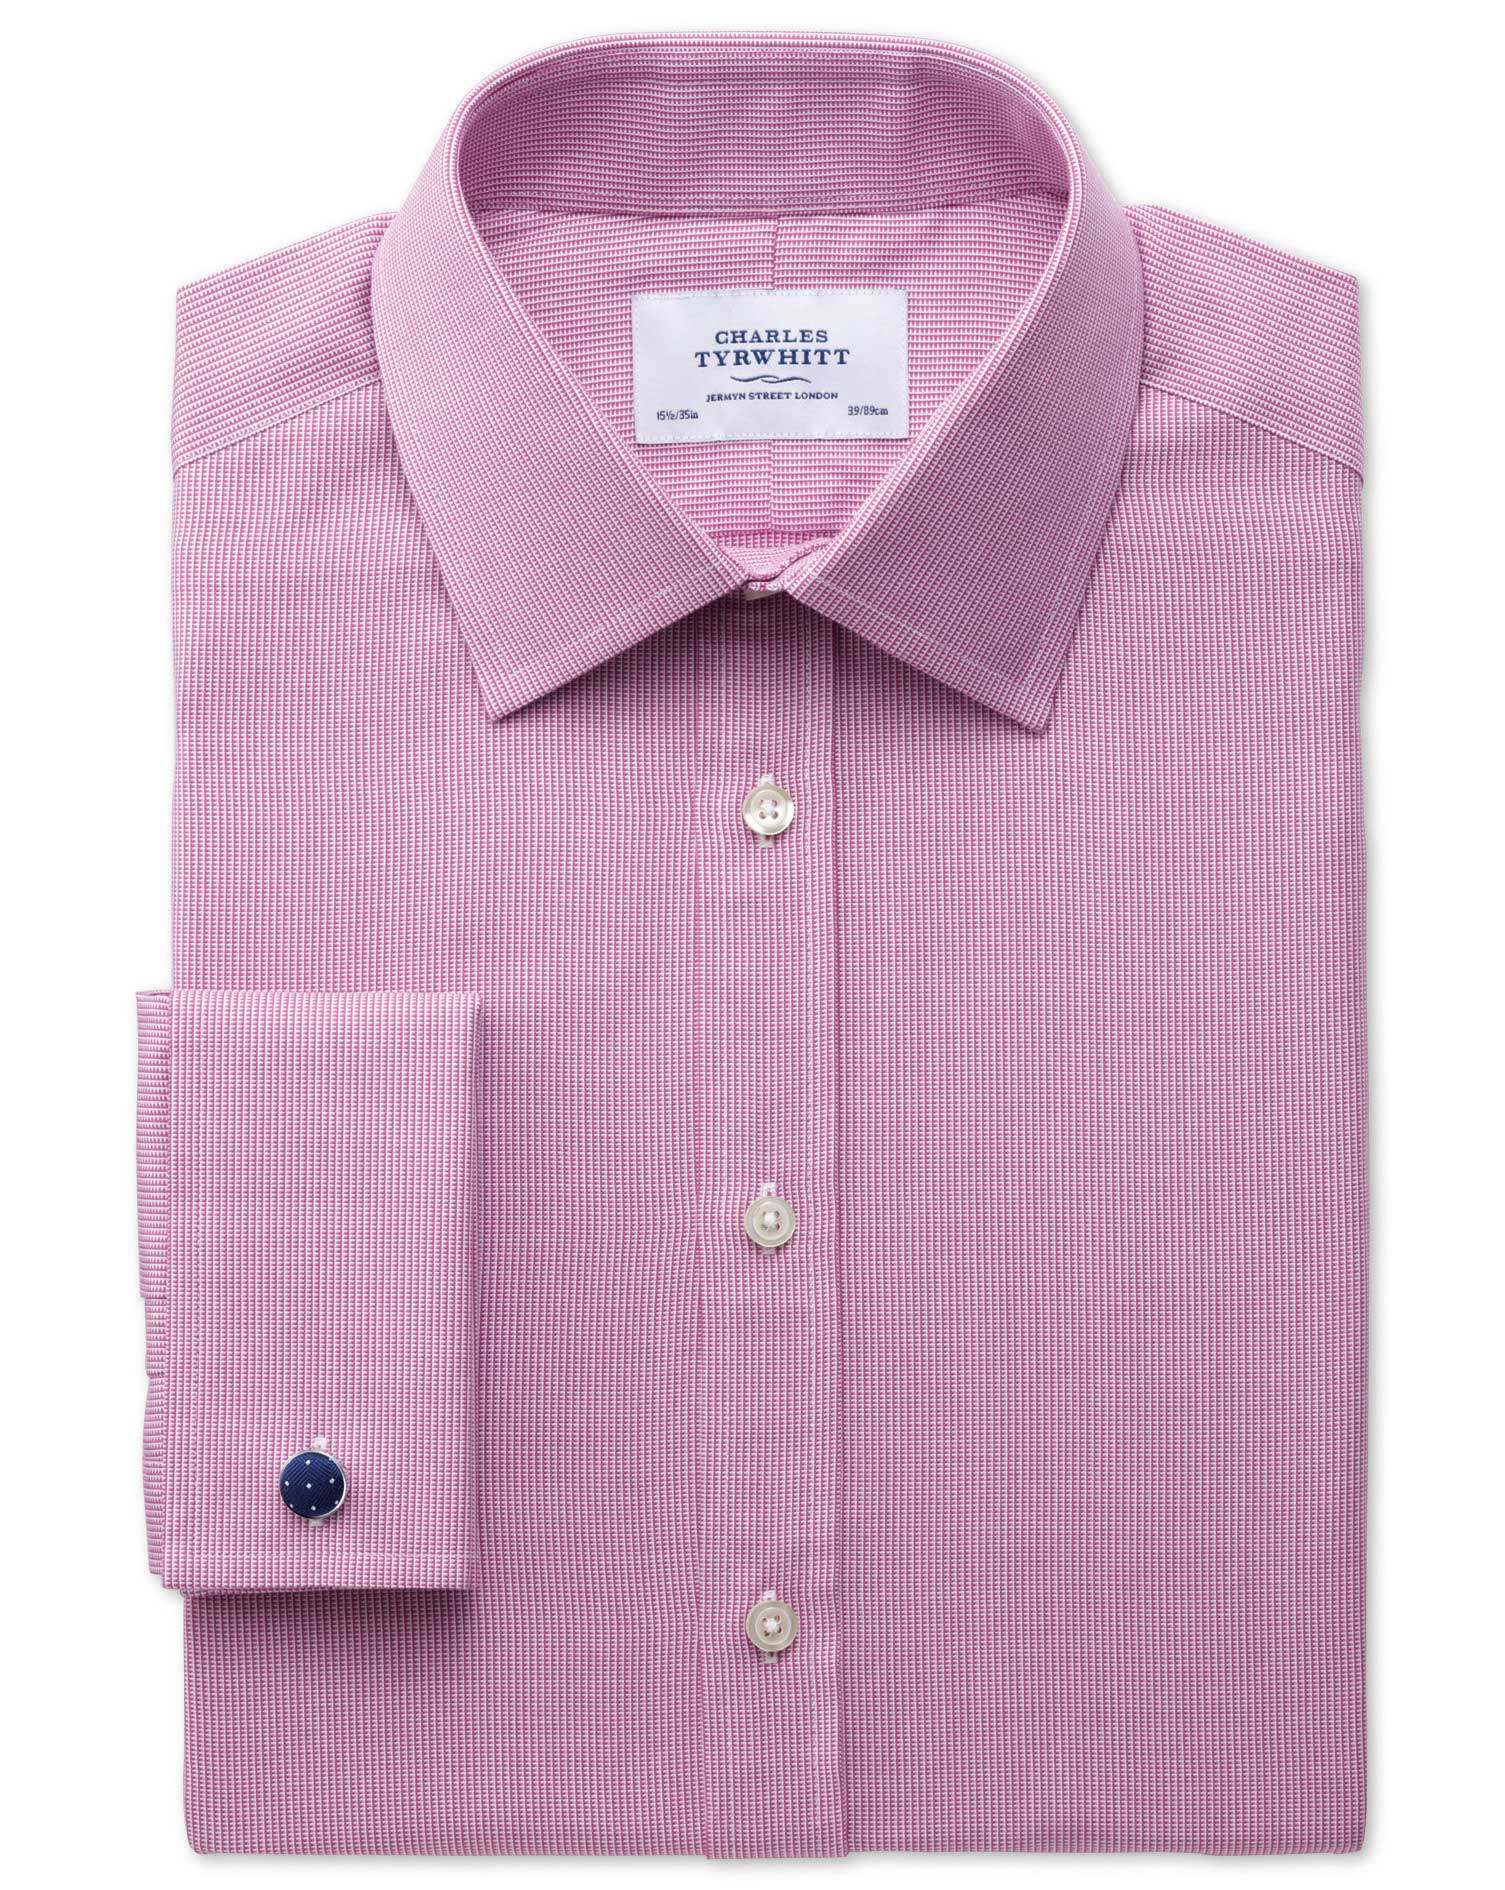 Extra Slim Fit Oxford Magenta Cotton Formal Shirt Double Cuff Size 17/34 by Charles Tyrwhitt